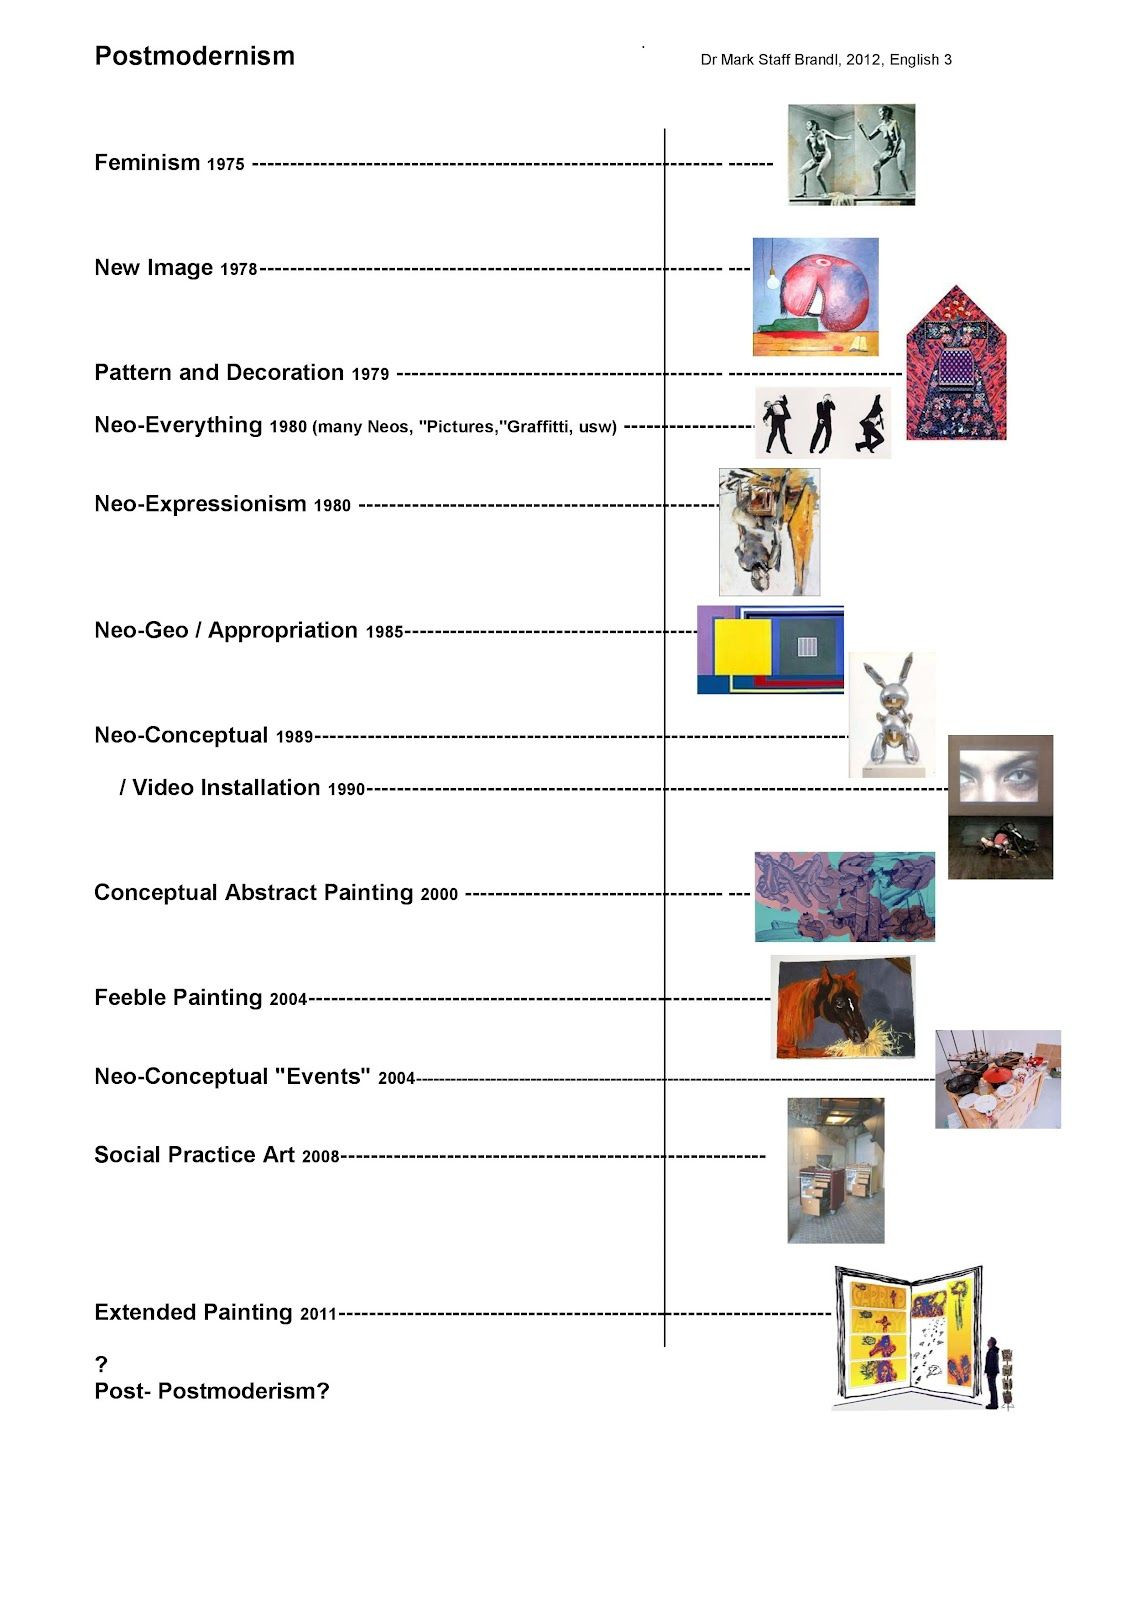 Timeline Worksheets for Middle School Brandl Art History Timeline New 12 Pdf Page 003 1 132